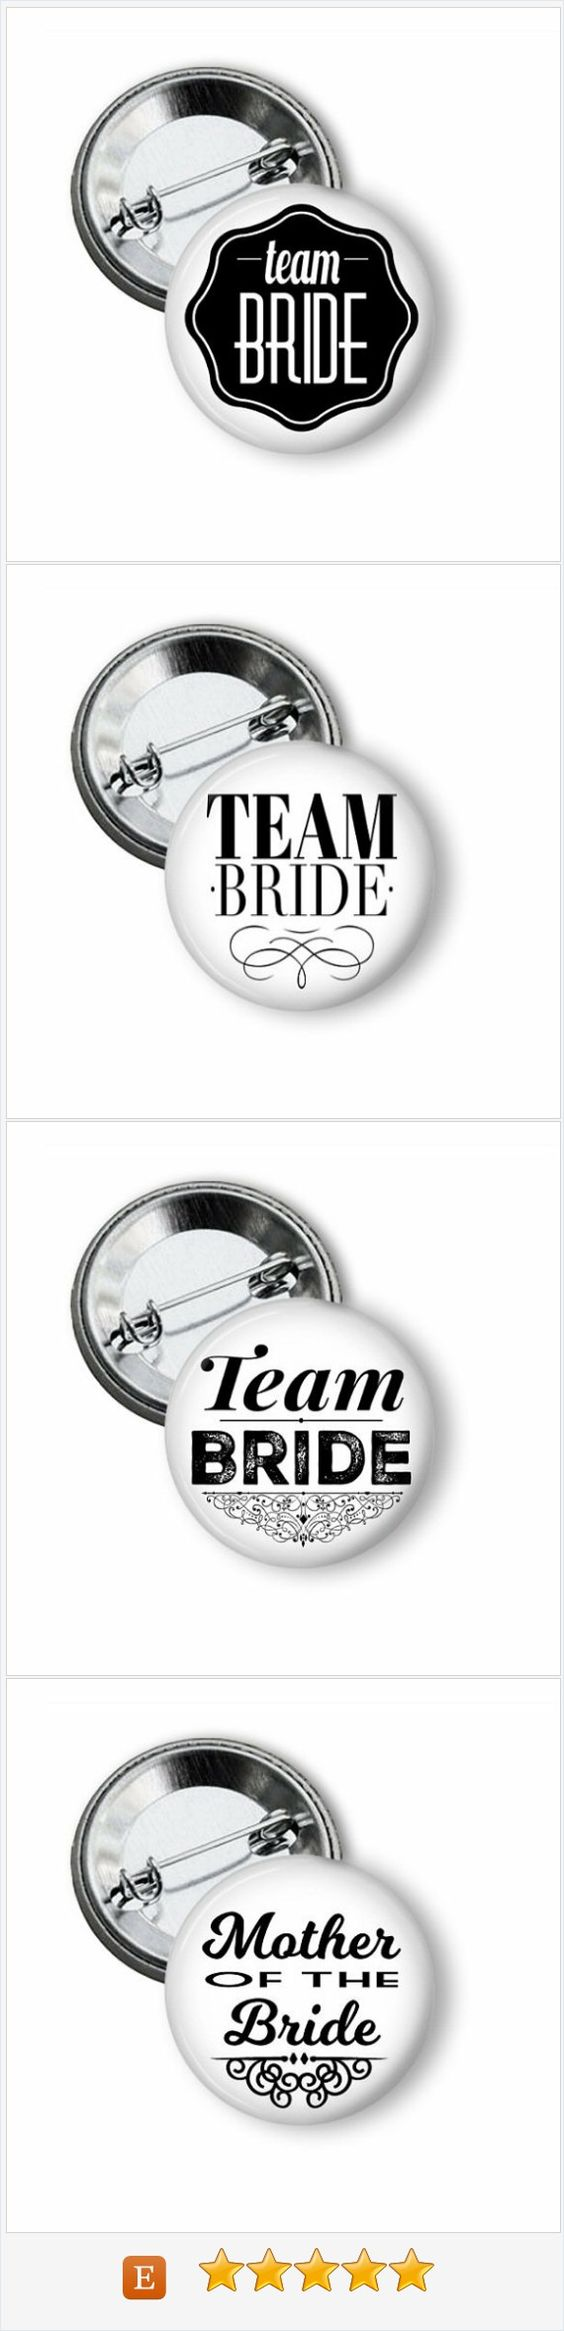 Team Bride pinback buttons great little gifts for bachelorette party attendants or rehearsal dinner.  Cute idea for party favor bags. #teambride #bride #bachelorette #bacheloretteparty #pinbackbuttons #rehearsaldiner #hennight #henparty